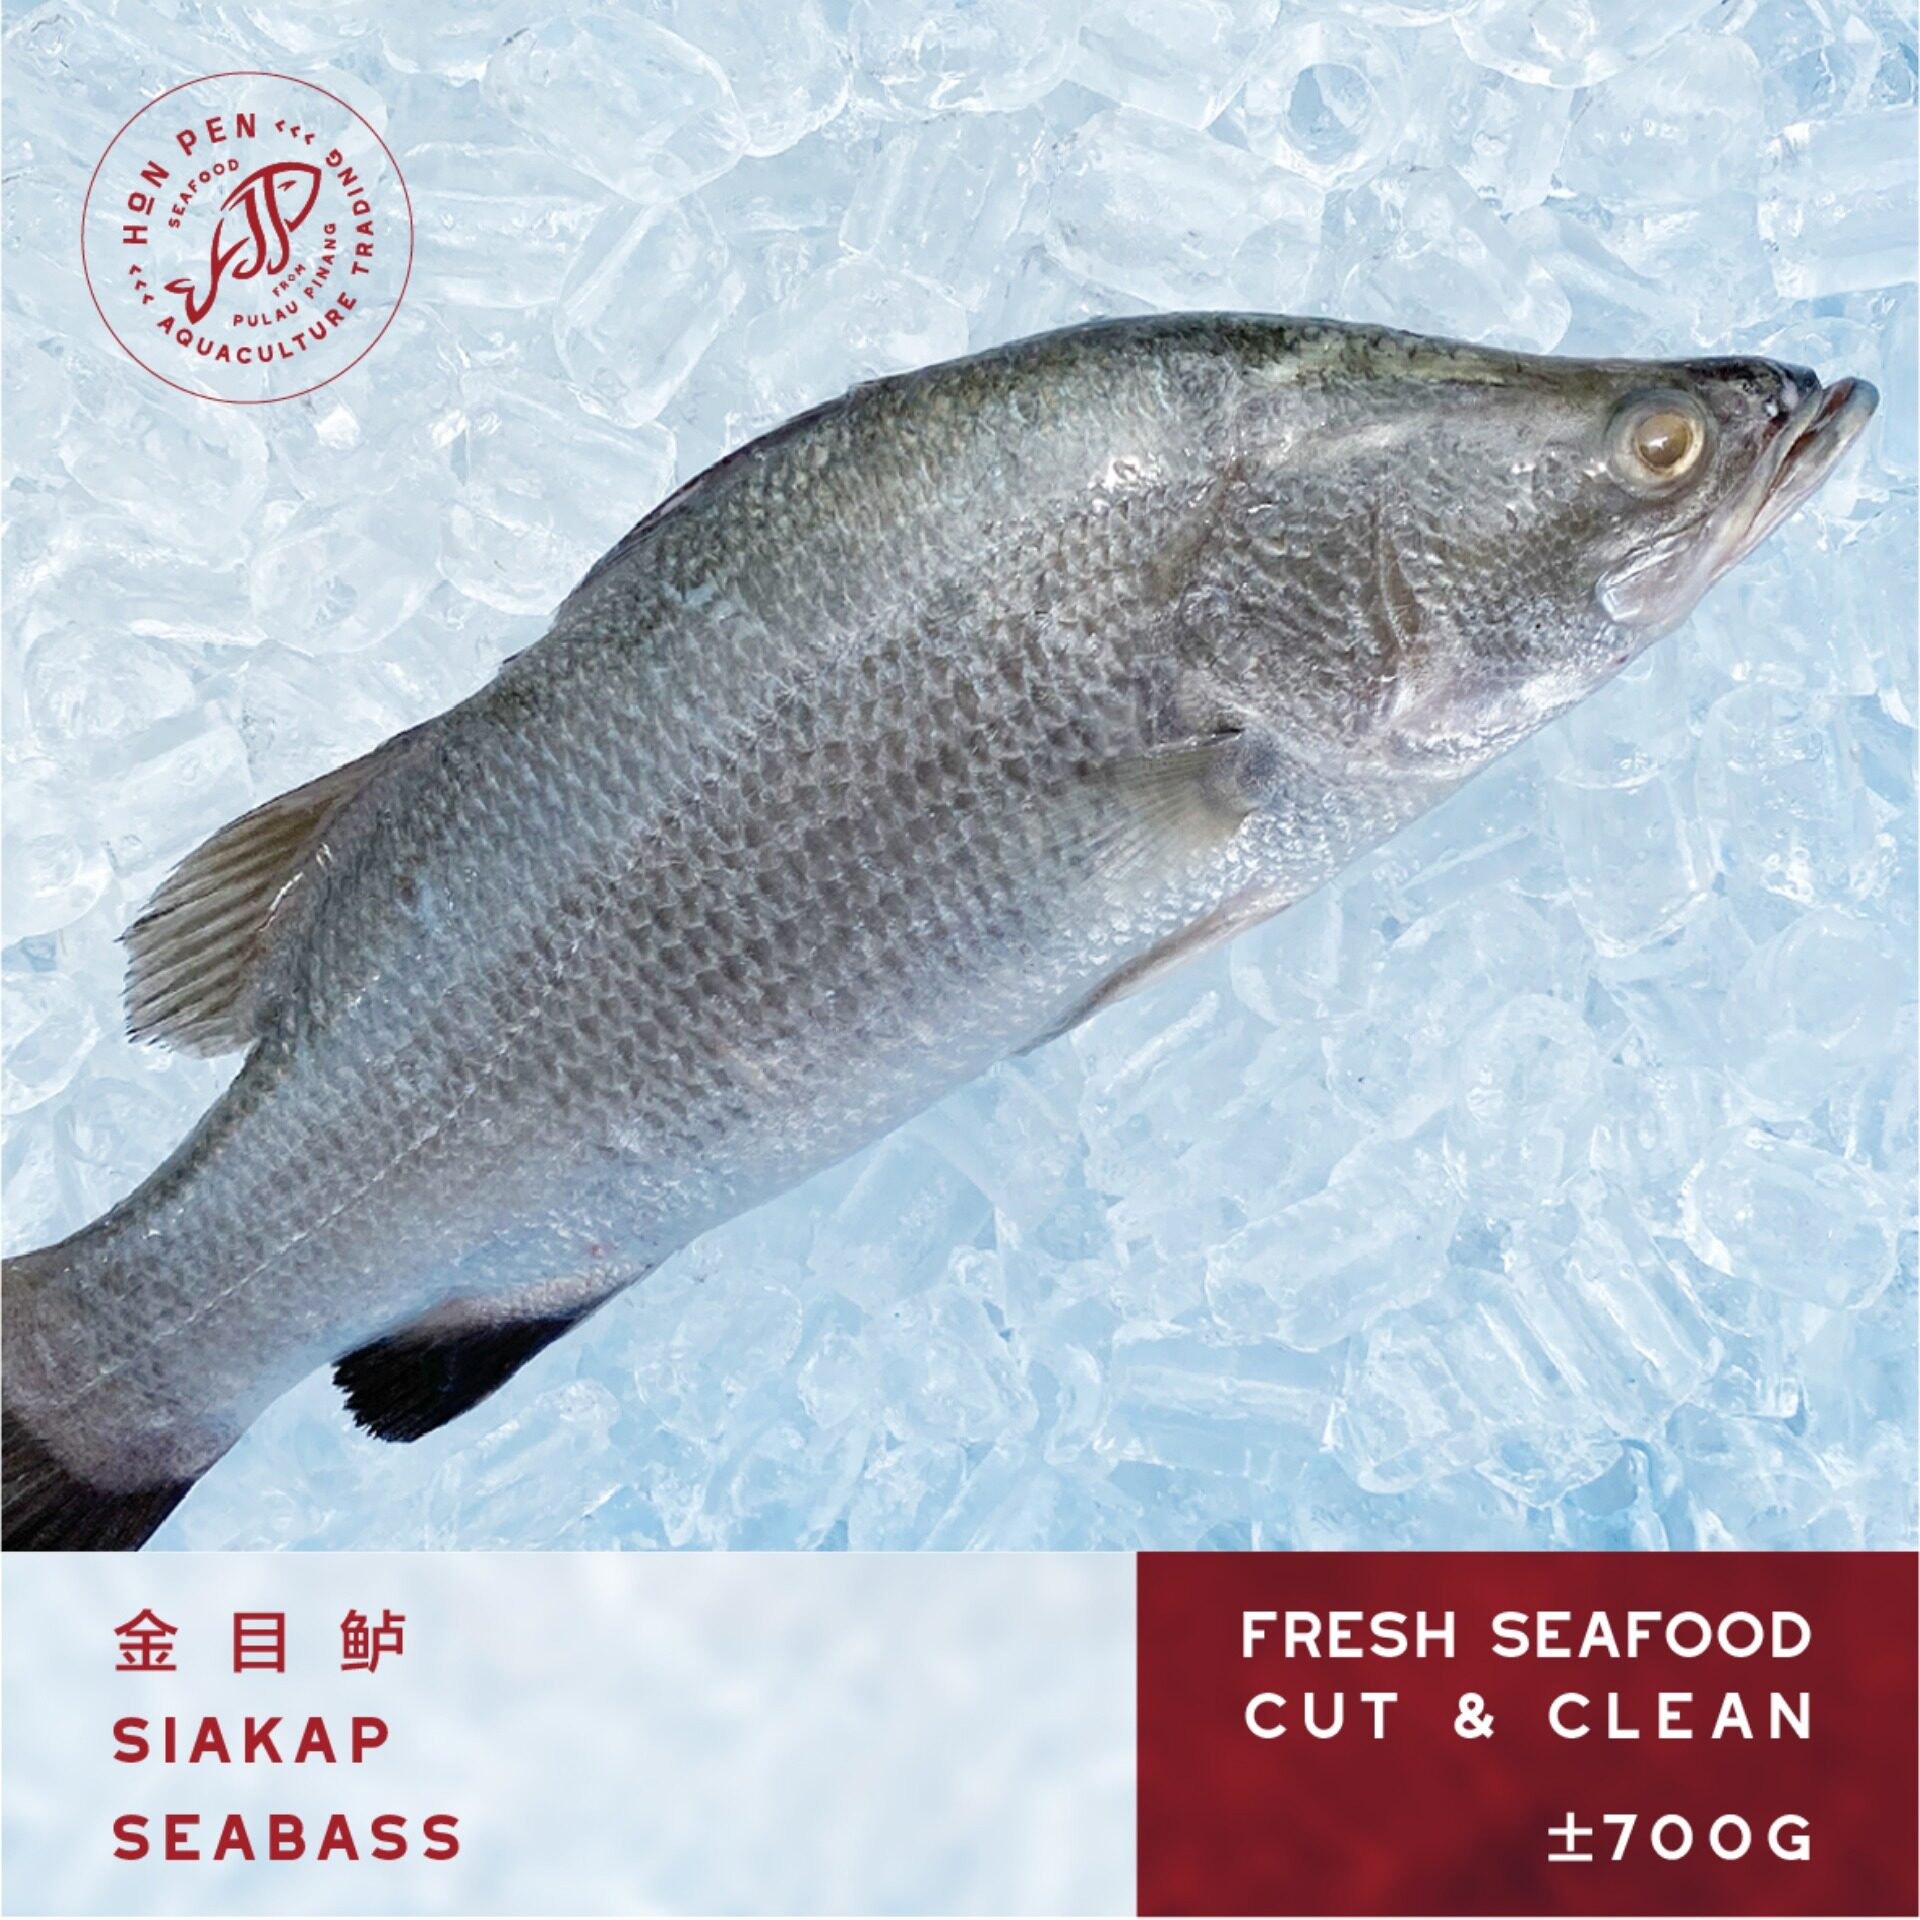 [Delivery applicable for purchases above RM50] 3pcs SEABASS 金目鲈 SIAKAP (Seafood) ±700g